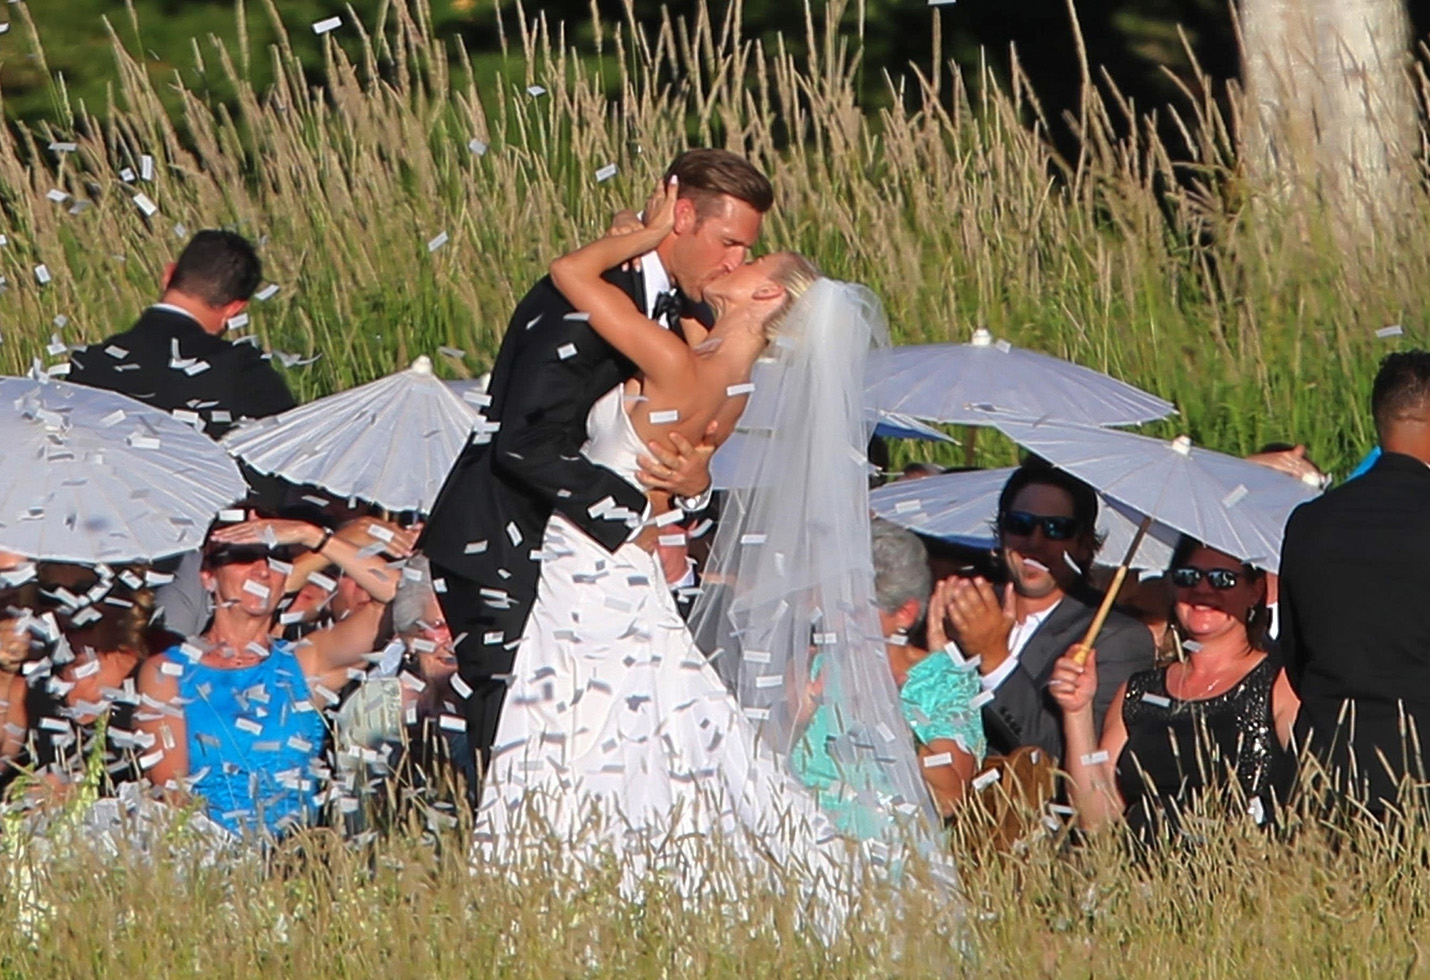 *PREMIUM EXCLUSIVE* Julianne Hough and Brooks Laich tie the knot in an intimate lake side ceremony